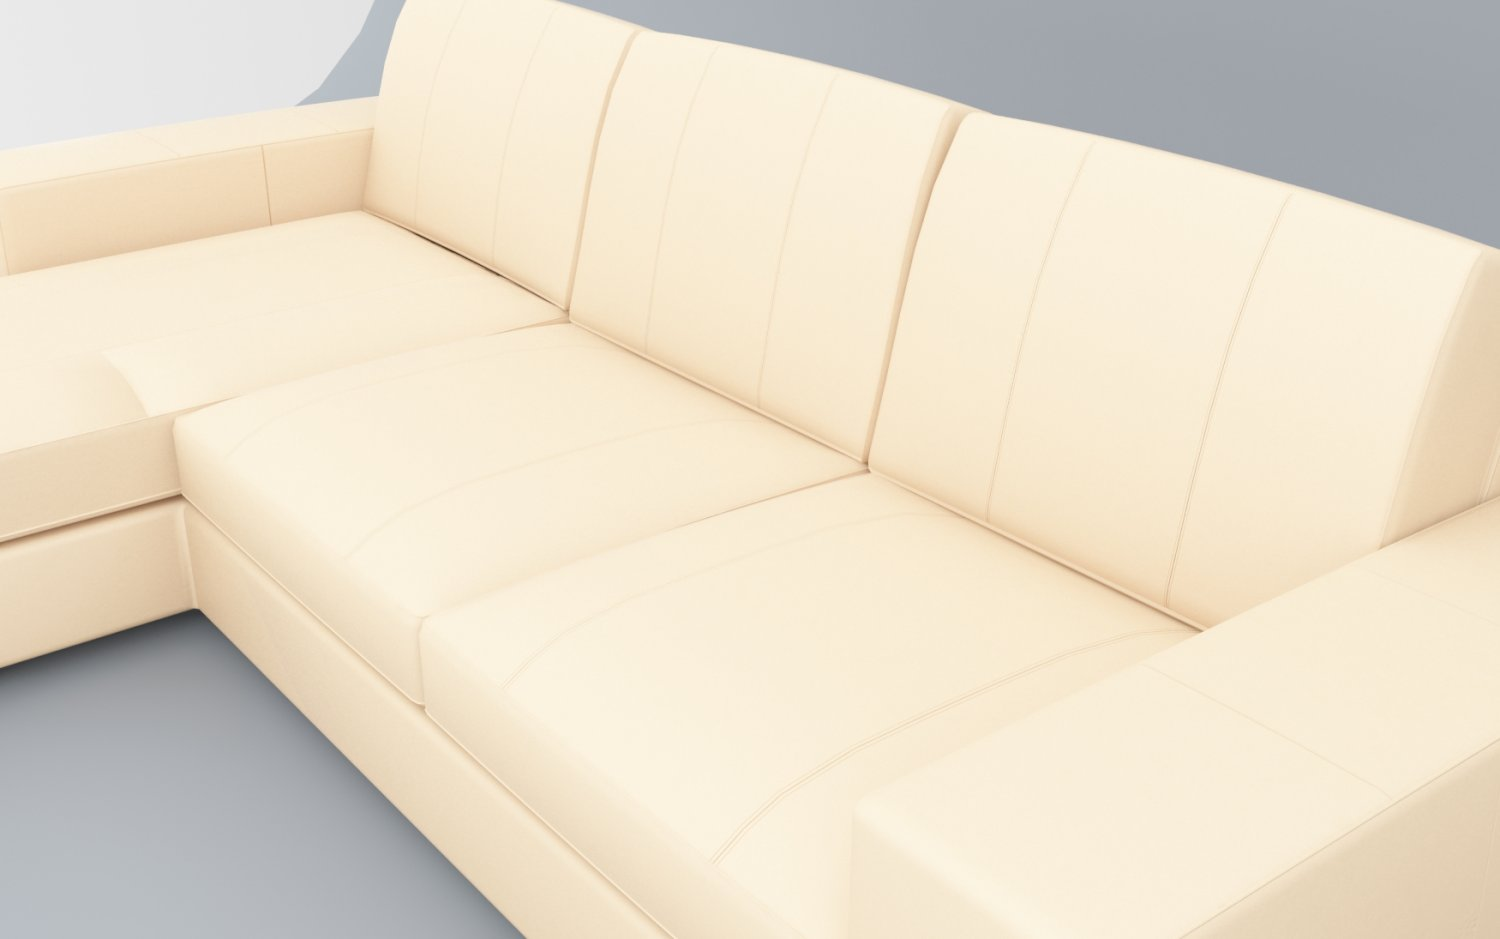 Kivik Sofa Leather Leather Sofa Kivik Ikea Low Poly 3d Model In Sofa 3dexport